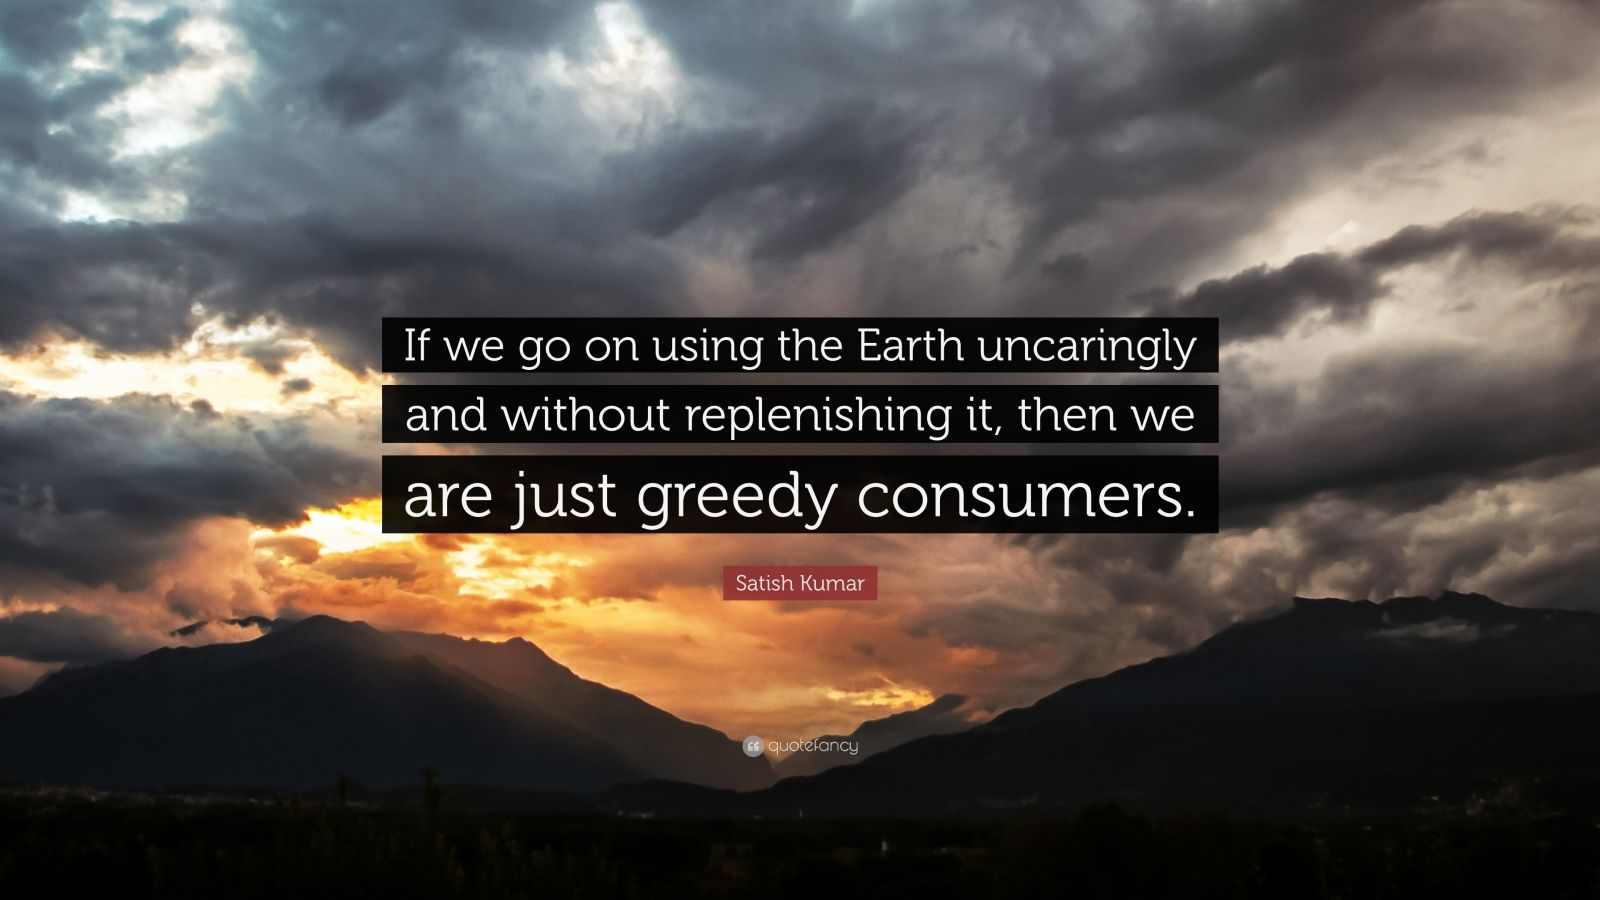 """Satish Kumar Quote: """"If we go on using the Earth uncaringly and without replenishing it, then we are just greedy consumers."""""""